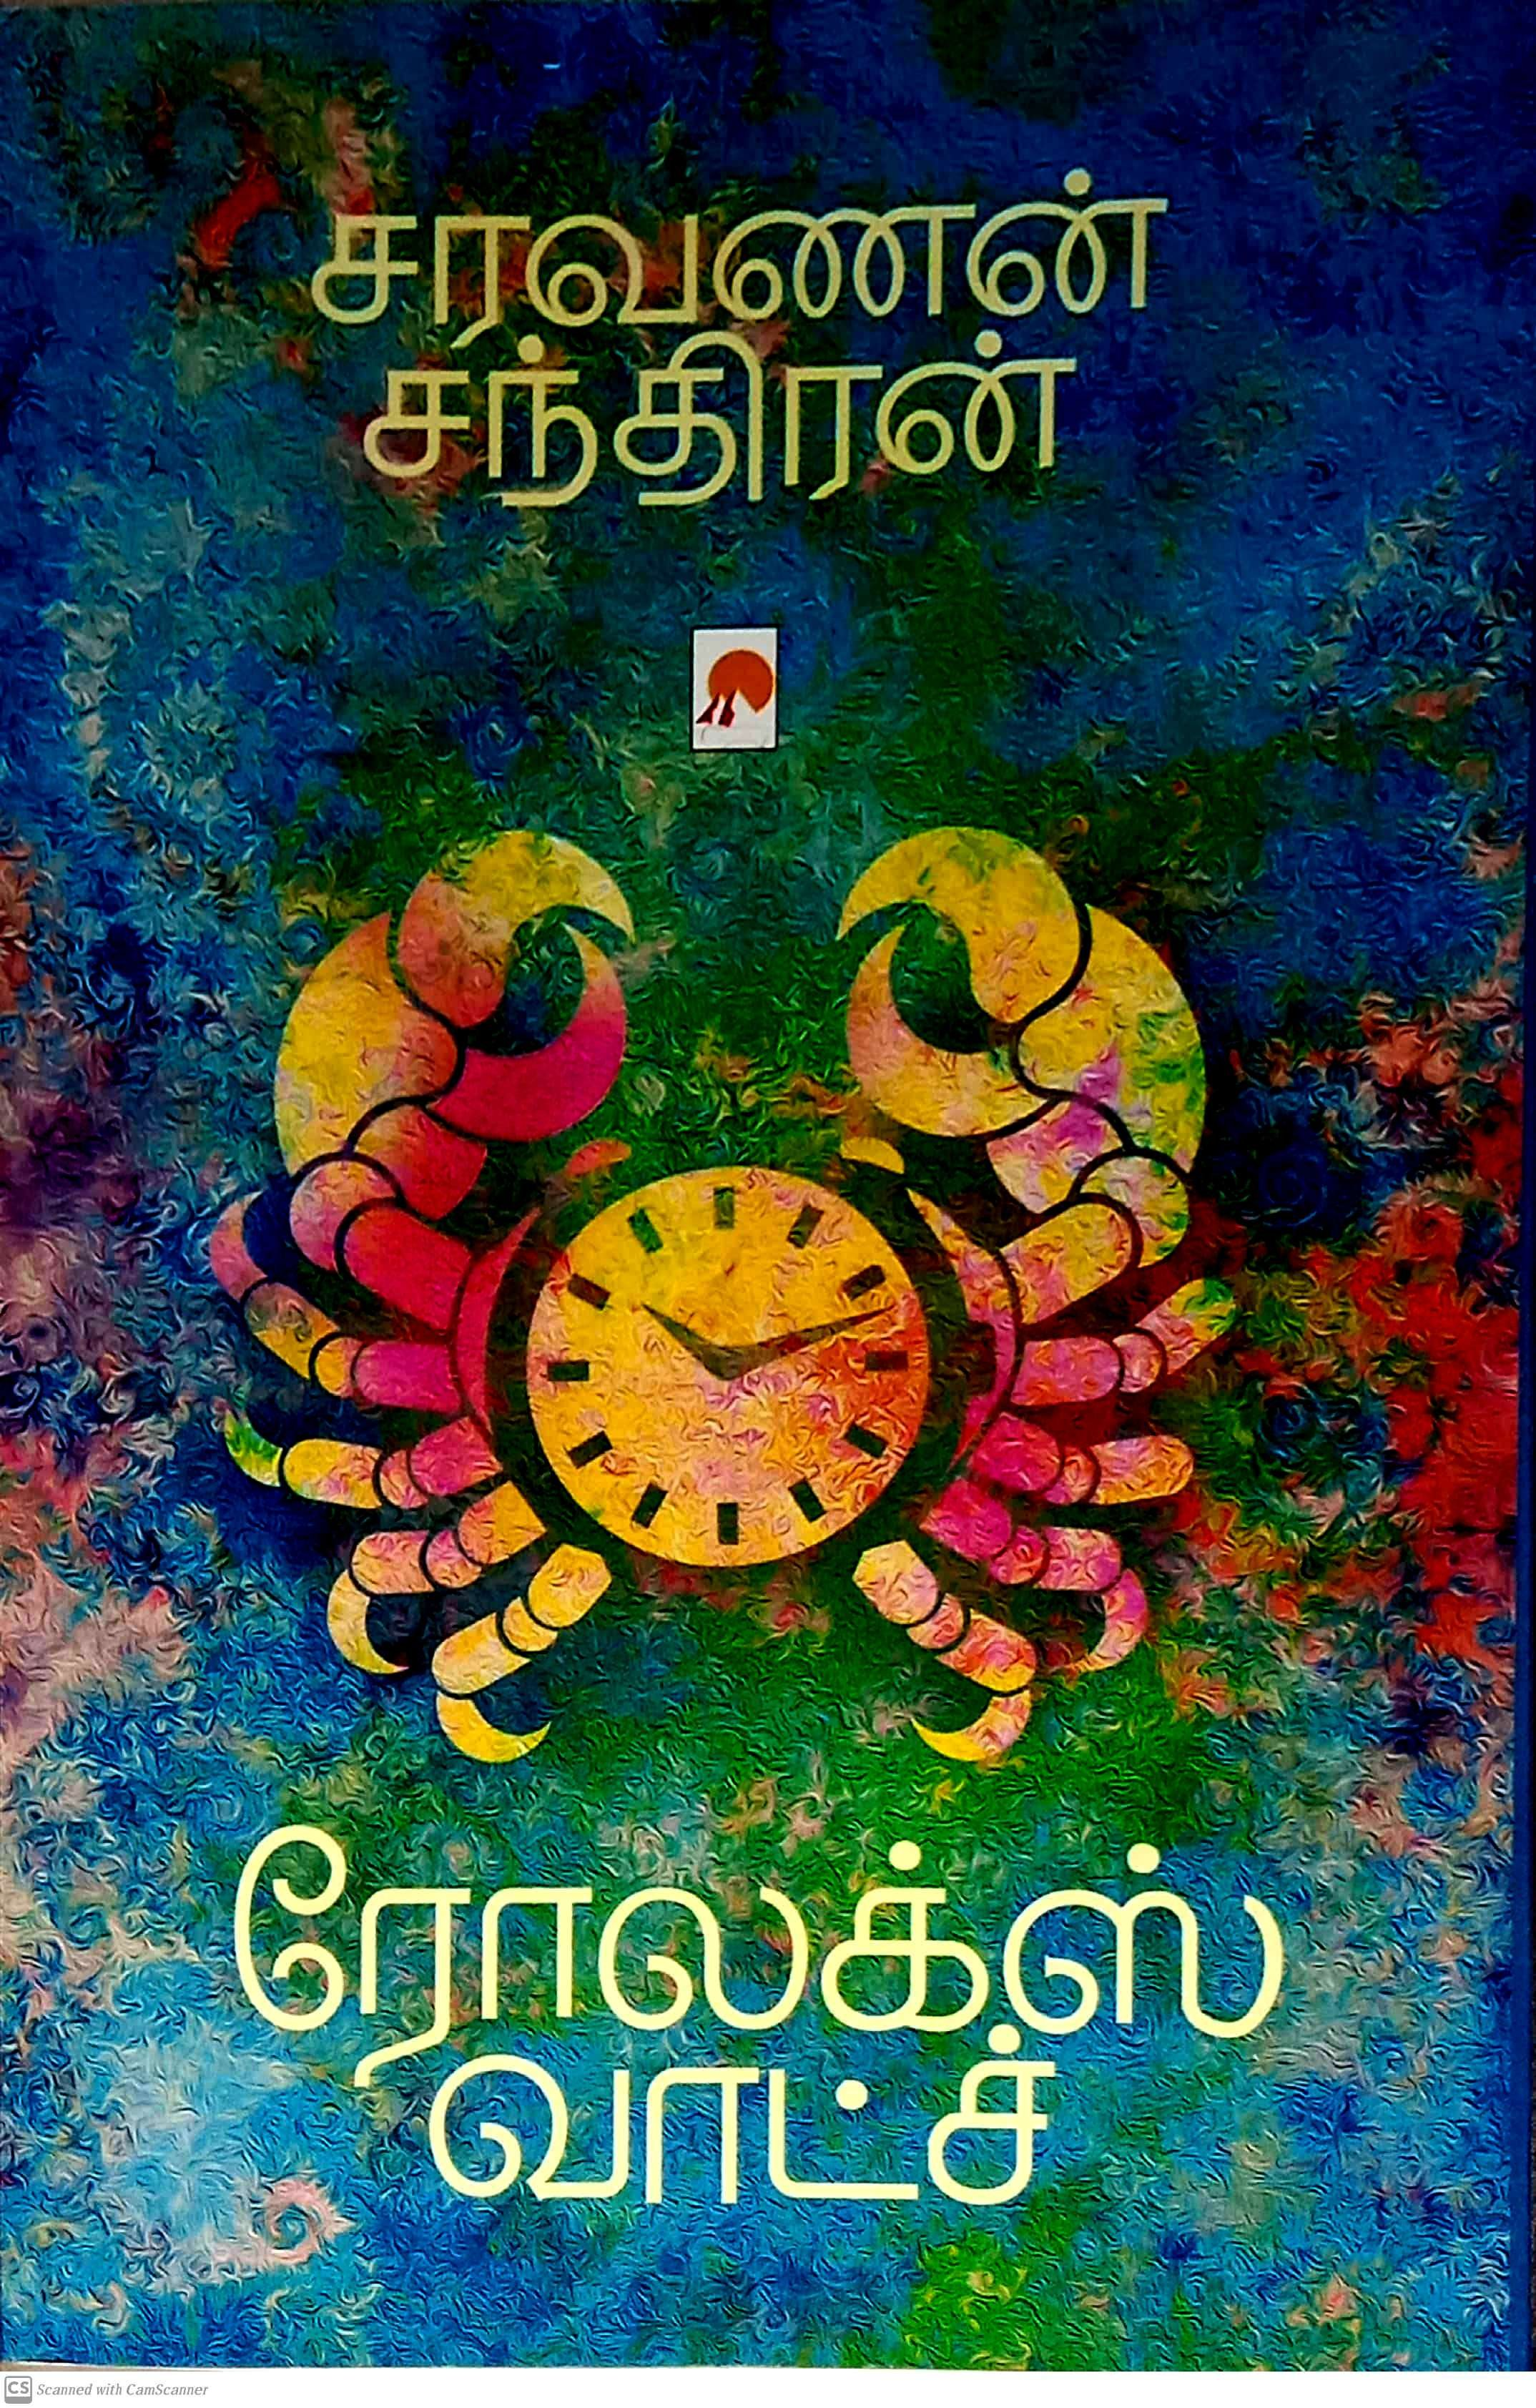 Routemybook - Buy Rolex Watch [ரோலக்ஸ் வாட்ச்] by Saravanan Chandhiran  [சரவணன் சந்திரன்] Online at Lowest Price in India